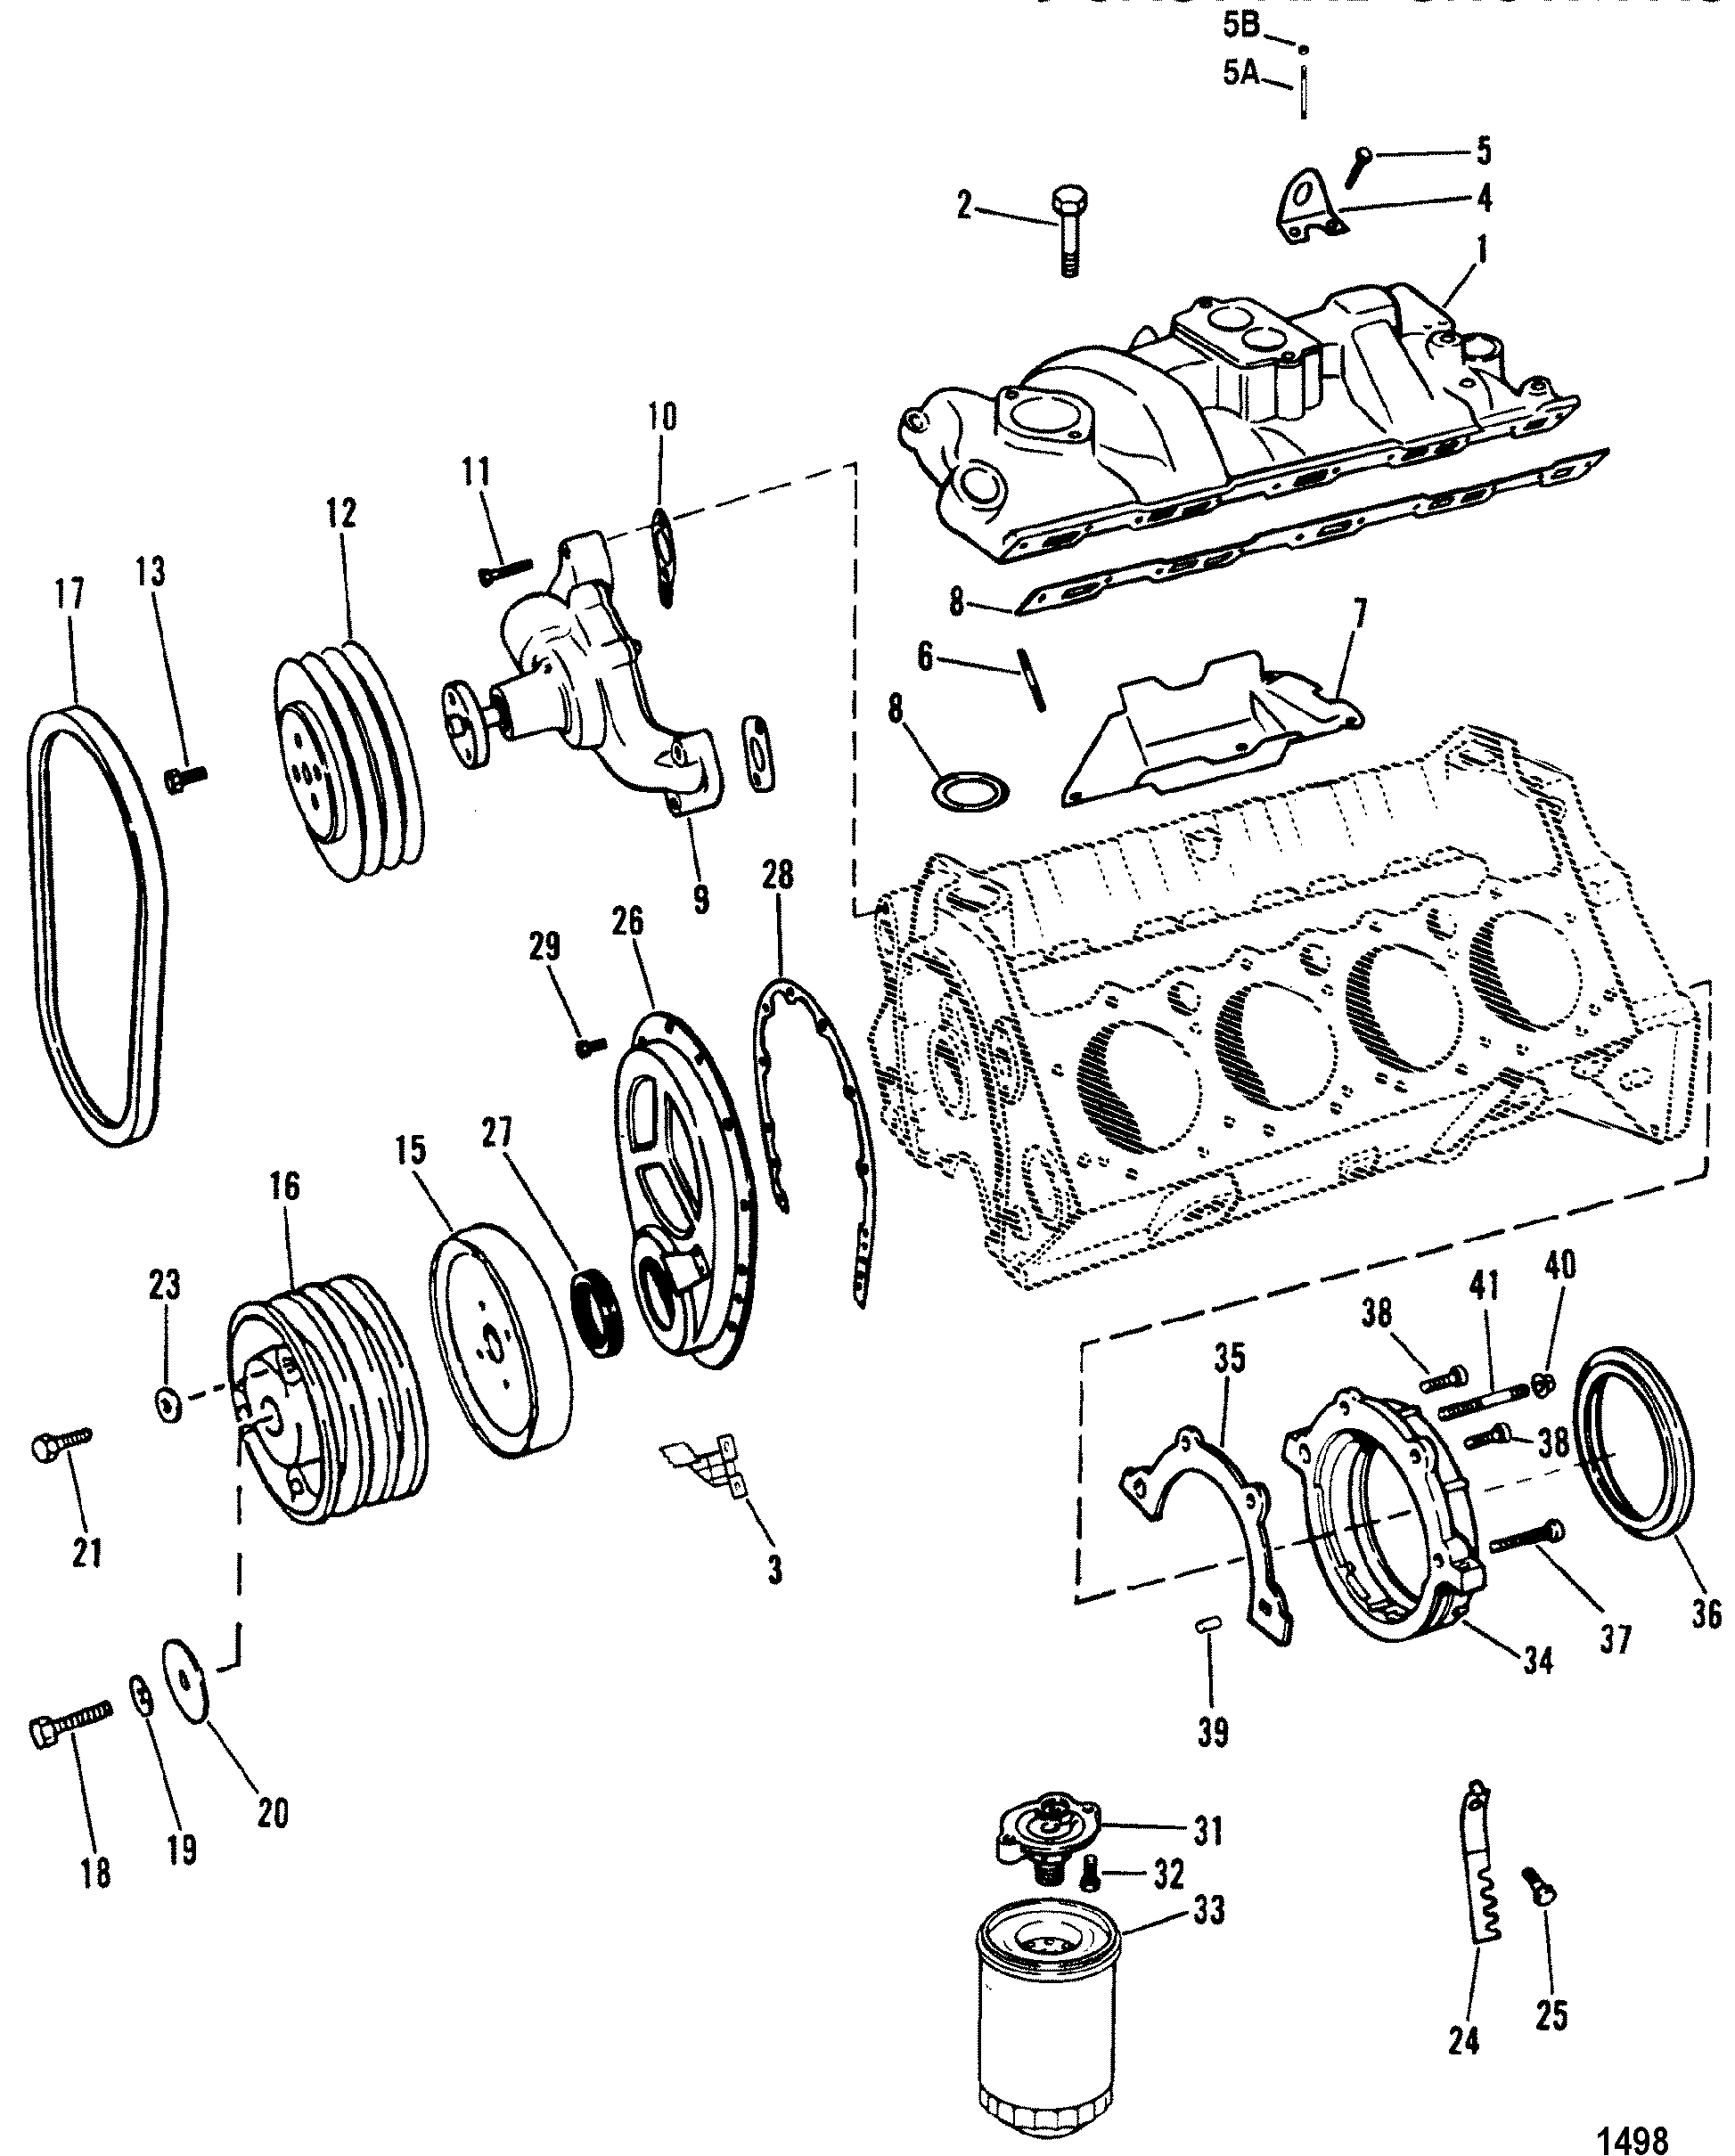 Intake Manifold And Front Cover Design Ii For Mercruiser